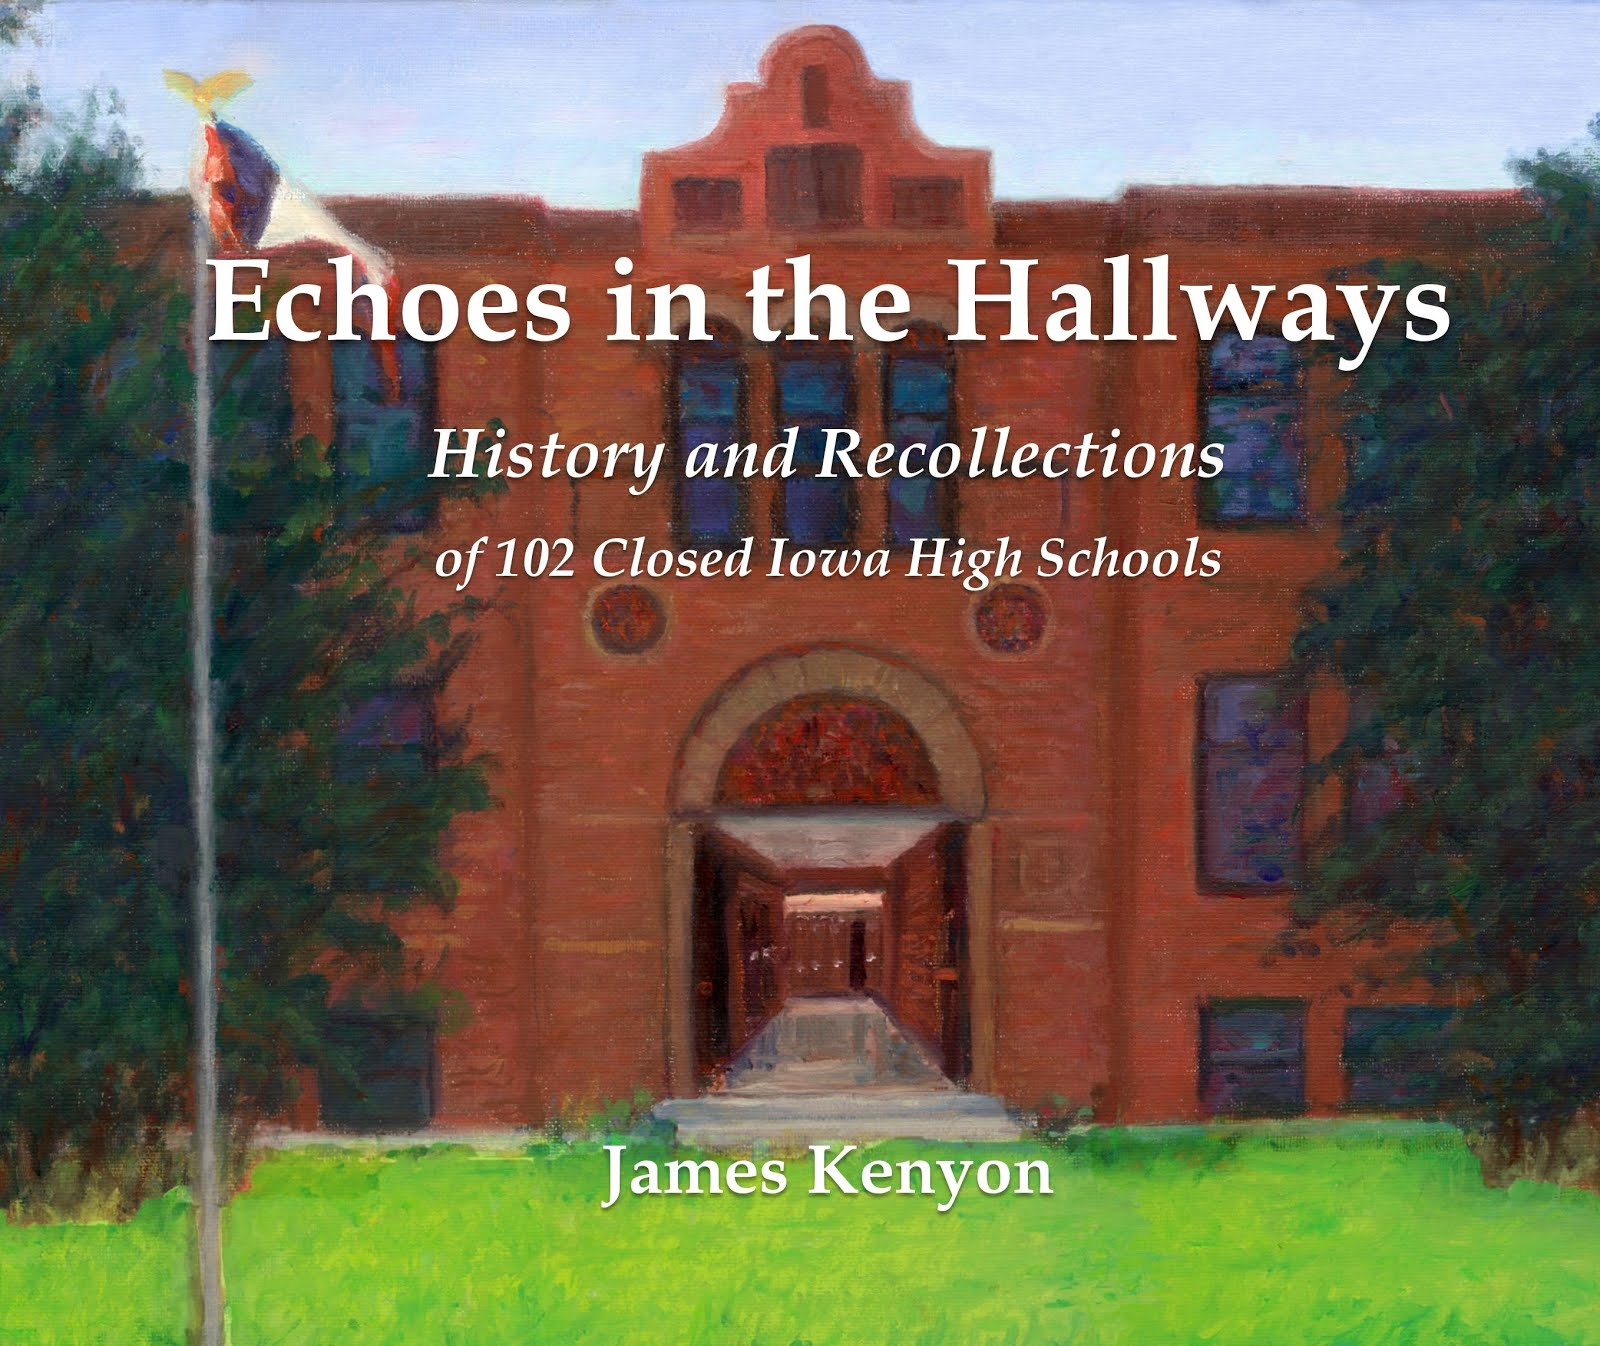 Echoes in the Hallways: History and Recollections of 102 Closed Iowa High Schools